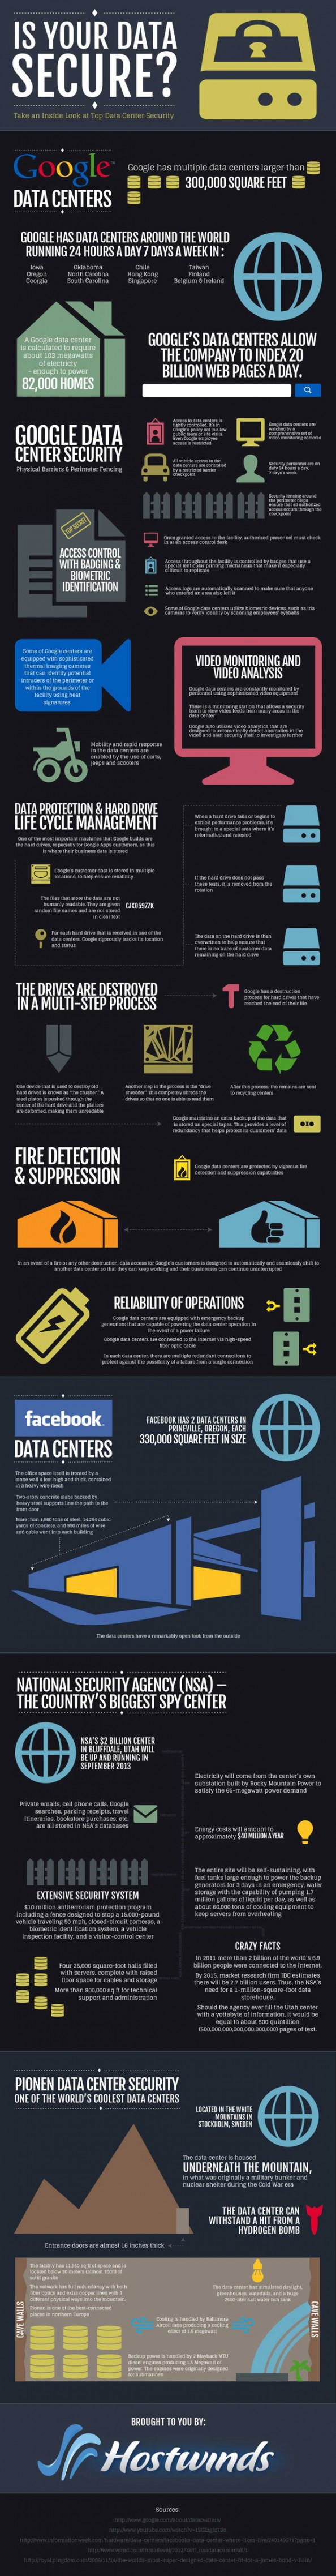 How secure is your personal data?